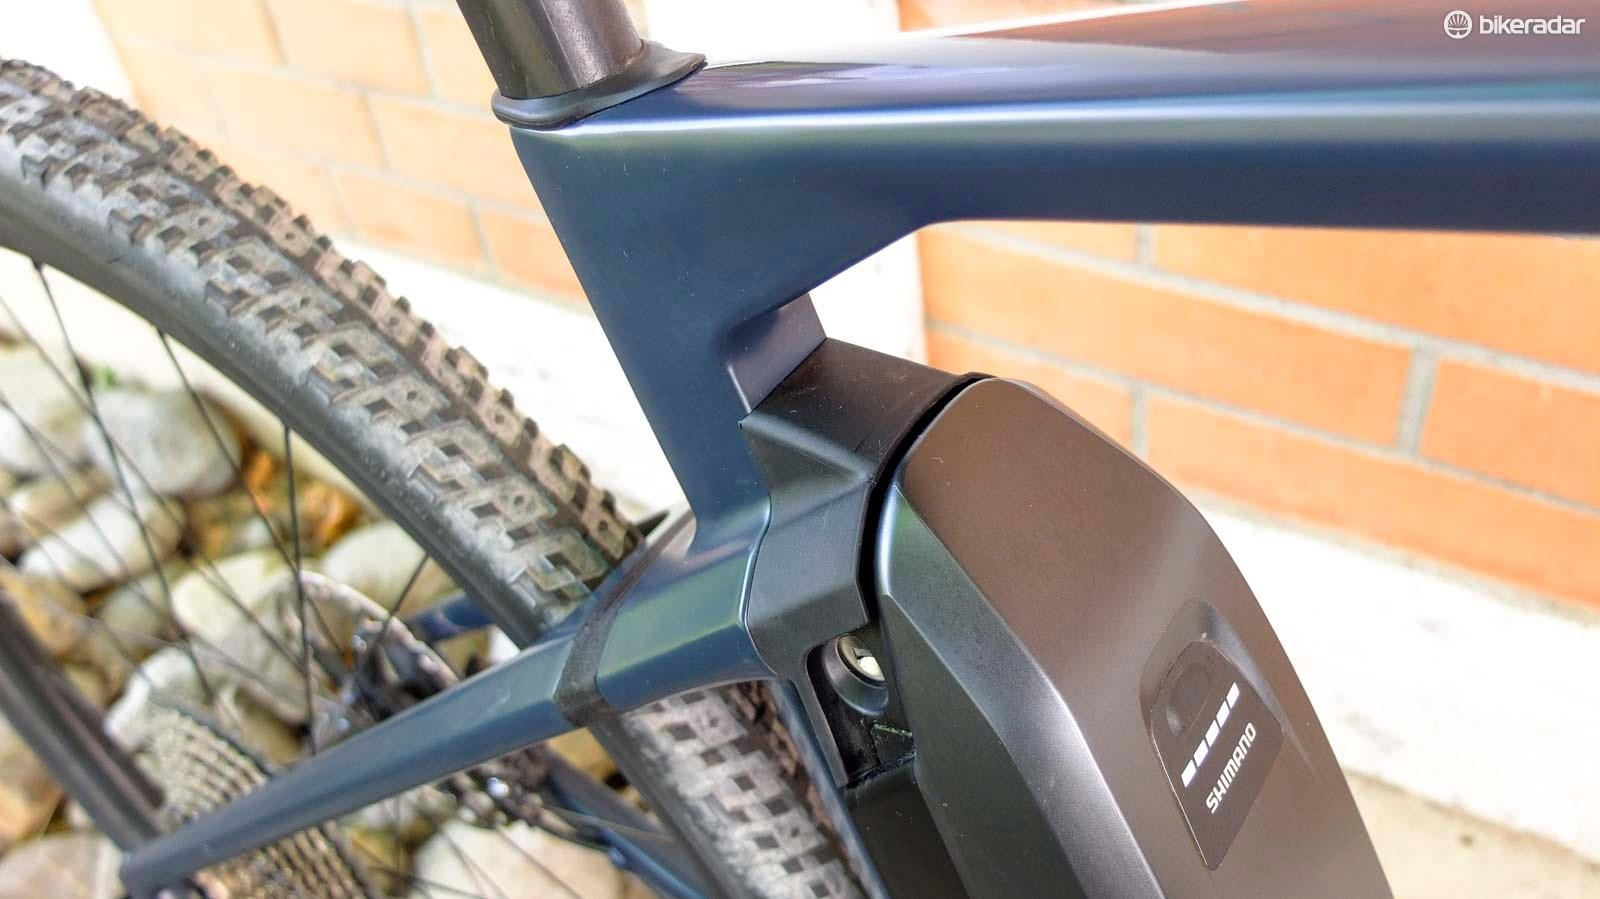 The seatstays blend in to the Shimano battery via the MTT system